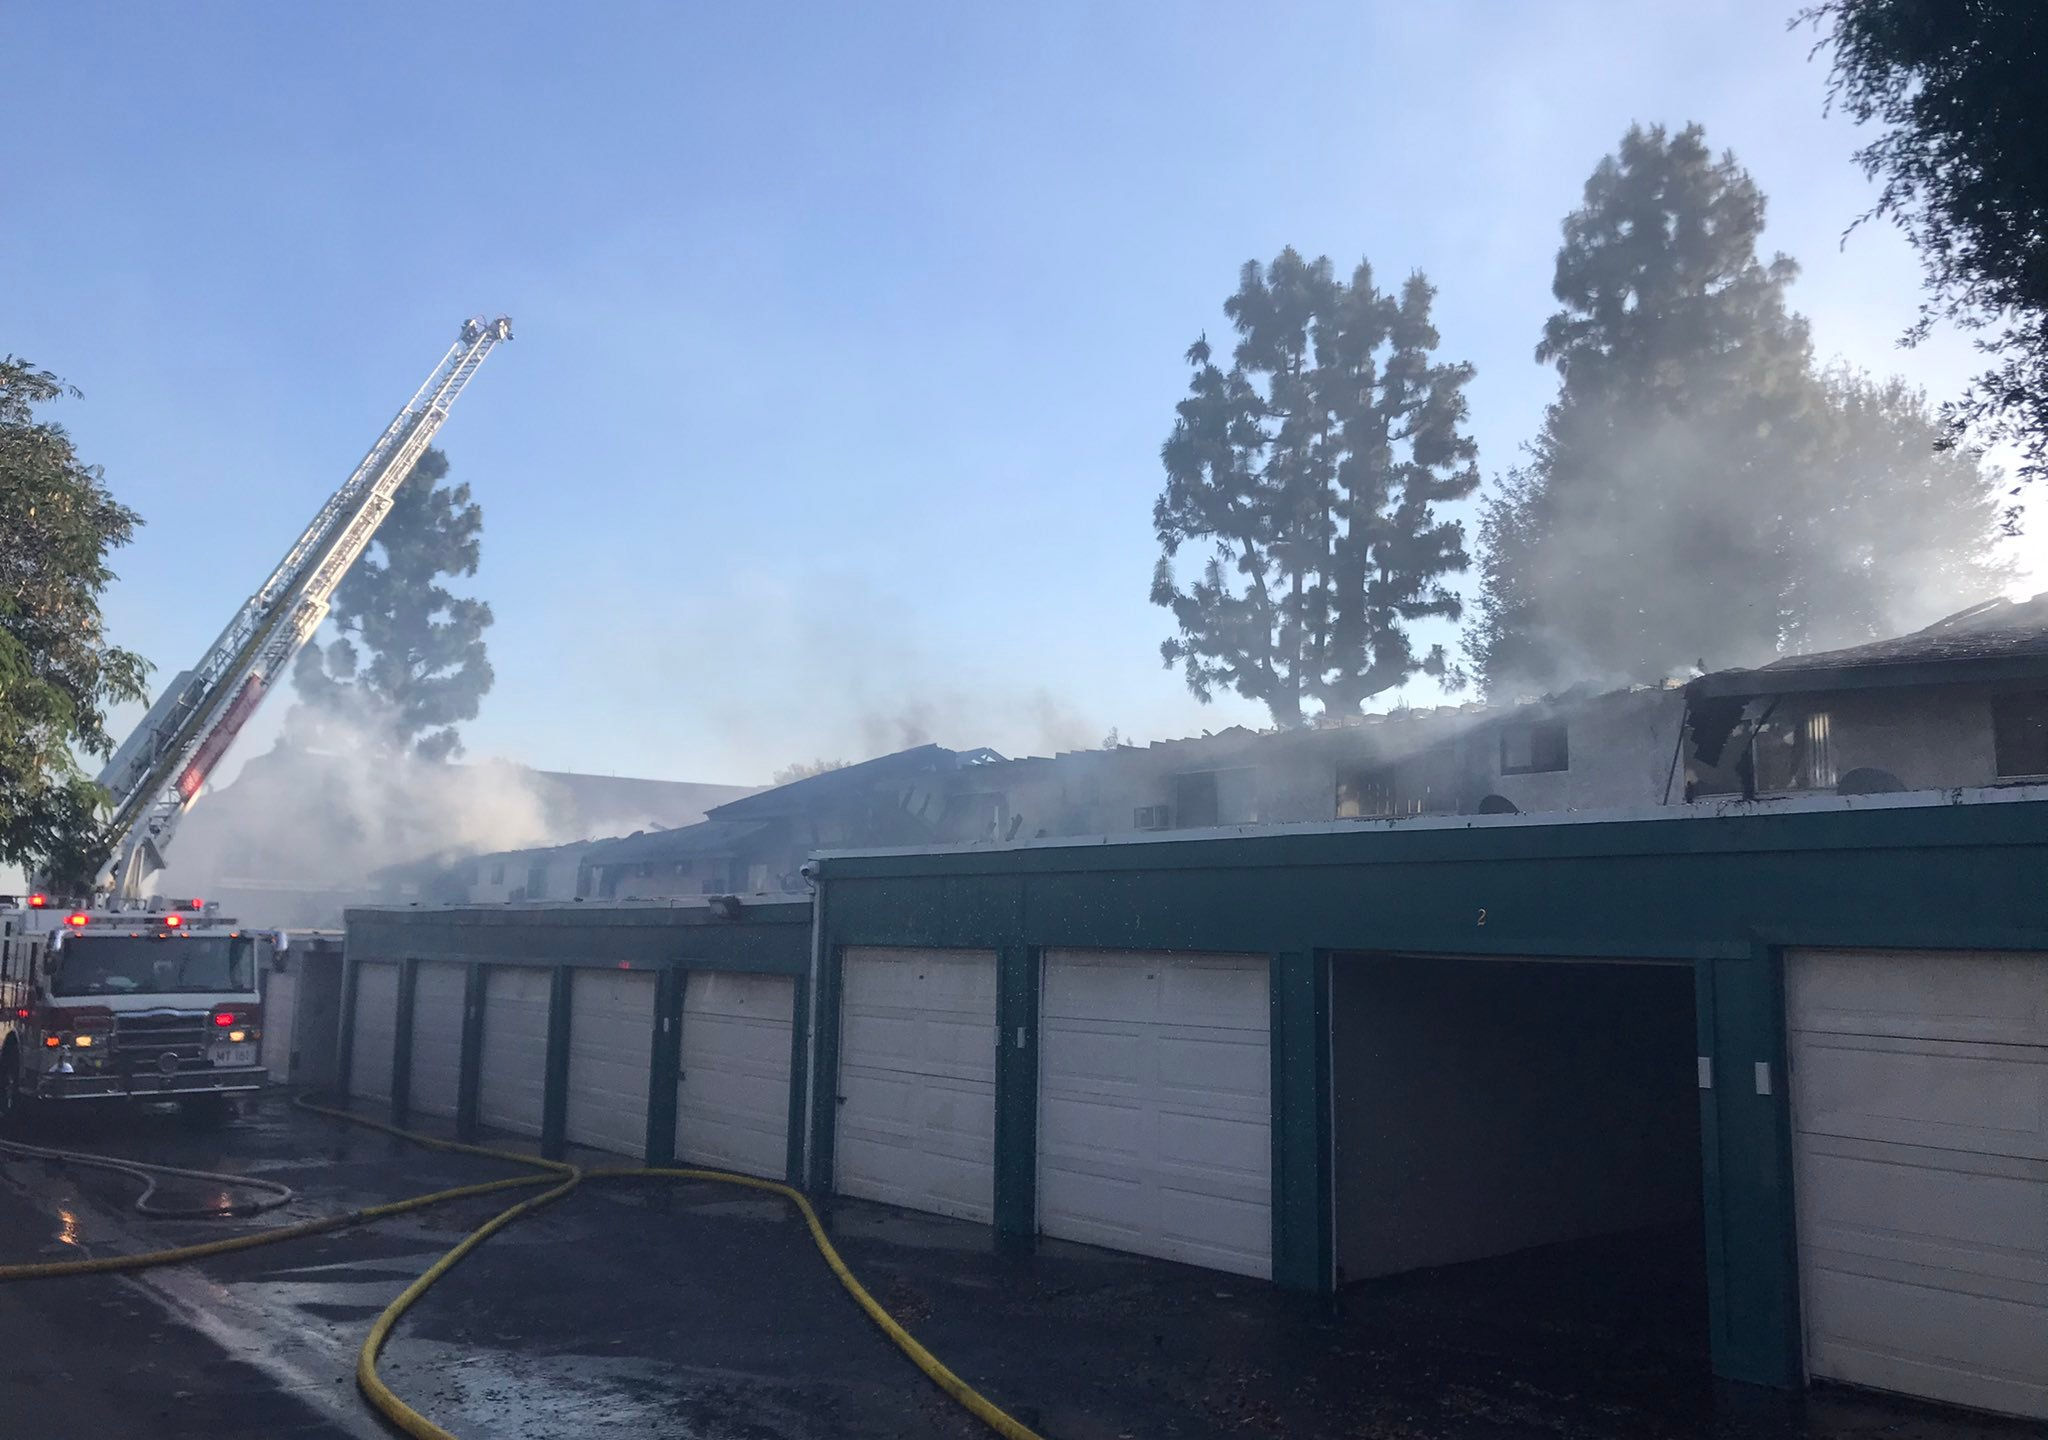 The San Bernardino County Fire Department shared a photo of a fire at an Upland apartment building on May 4, 2021.